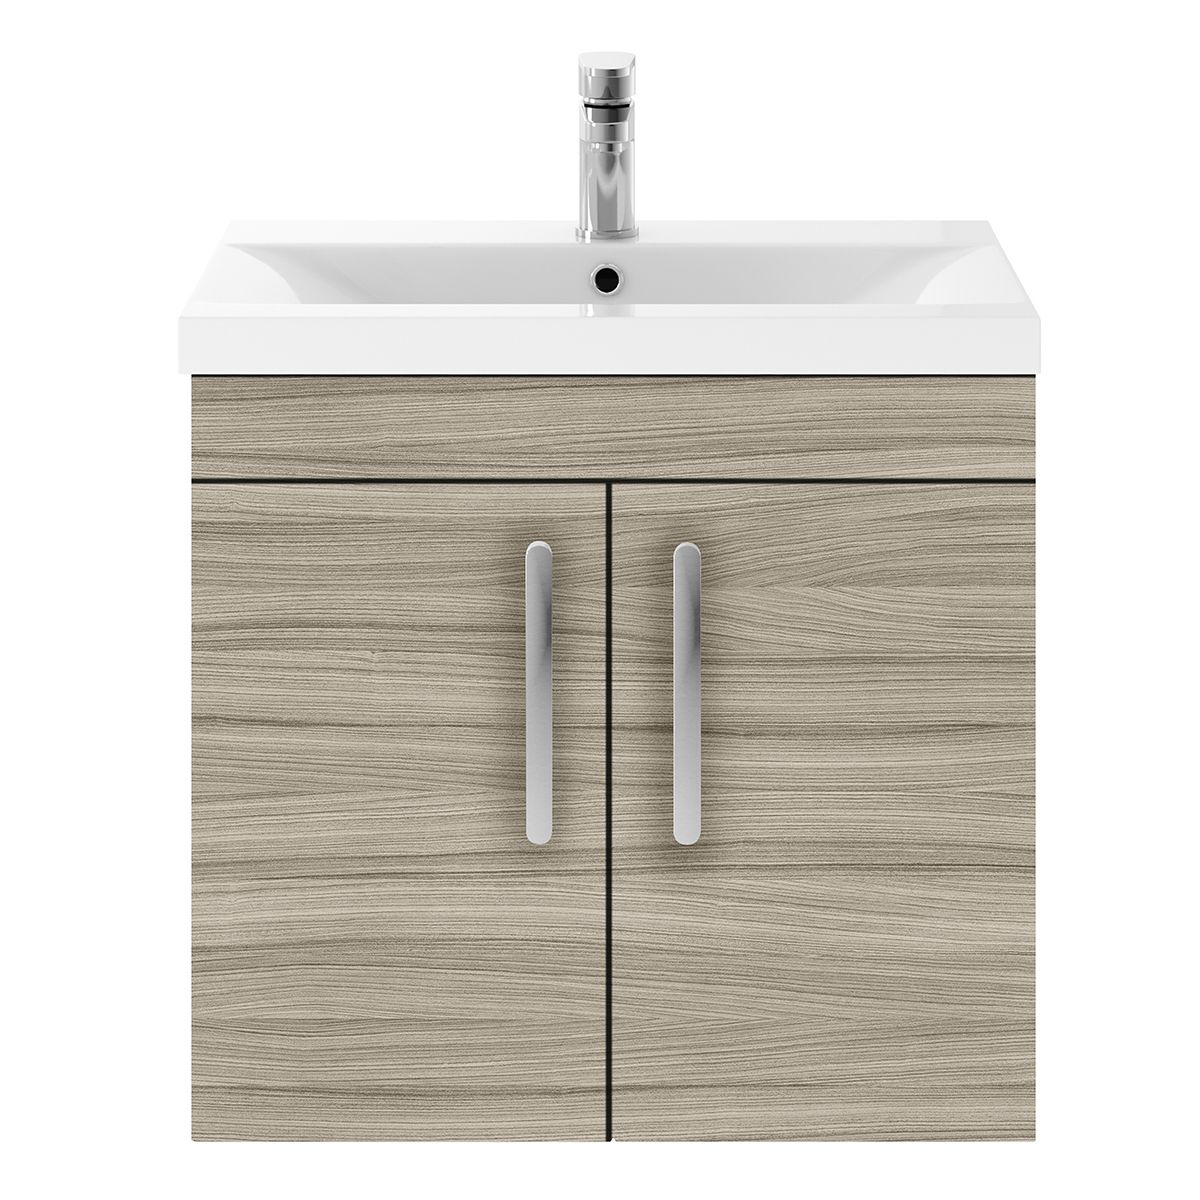 Nuie Athena Driftwood 2 Door Wall Hung Unit 600mm with Mid Edge Basin